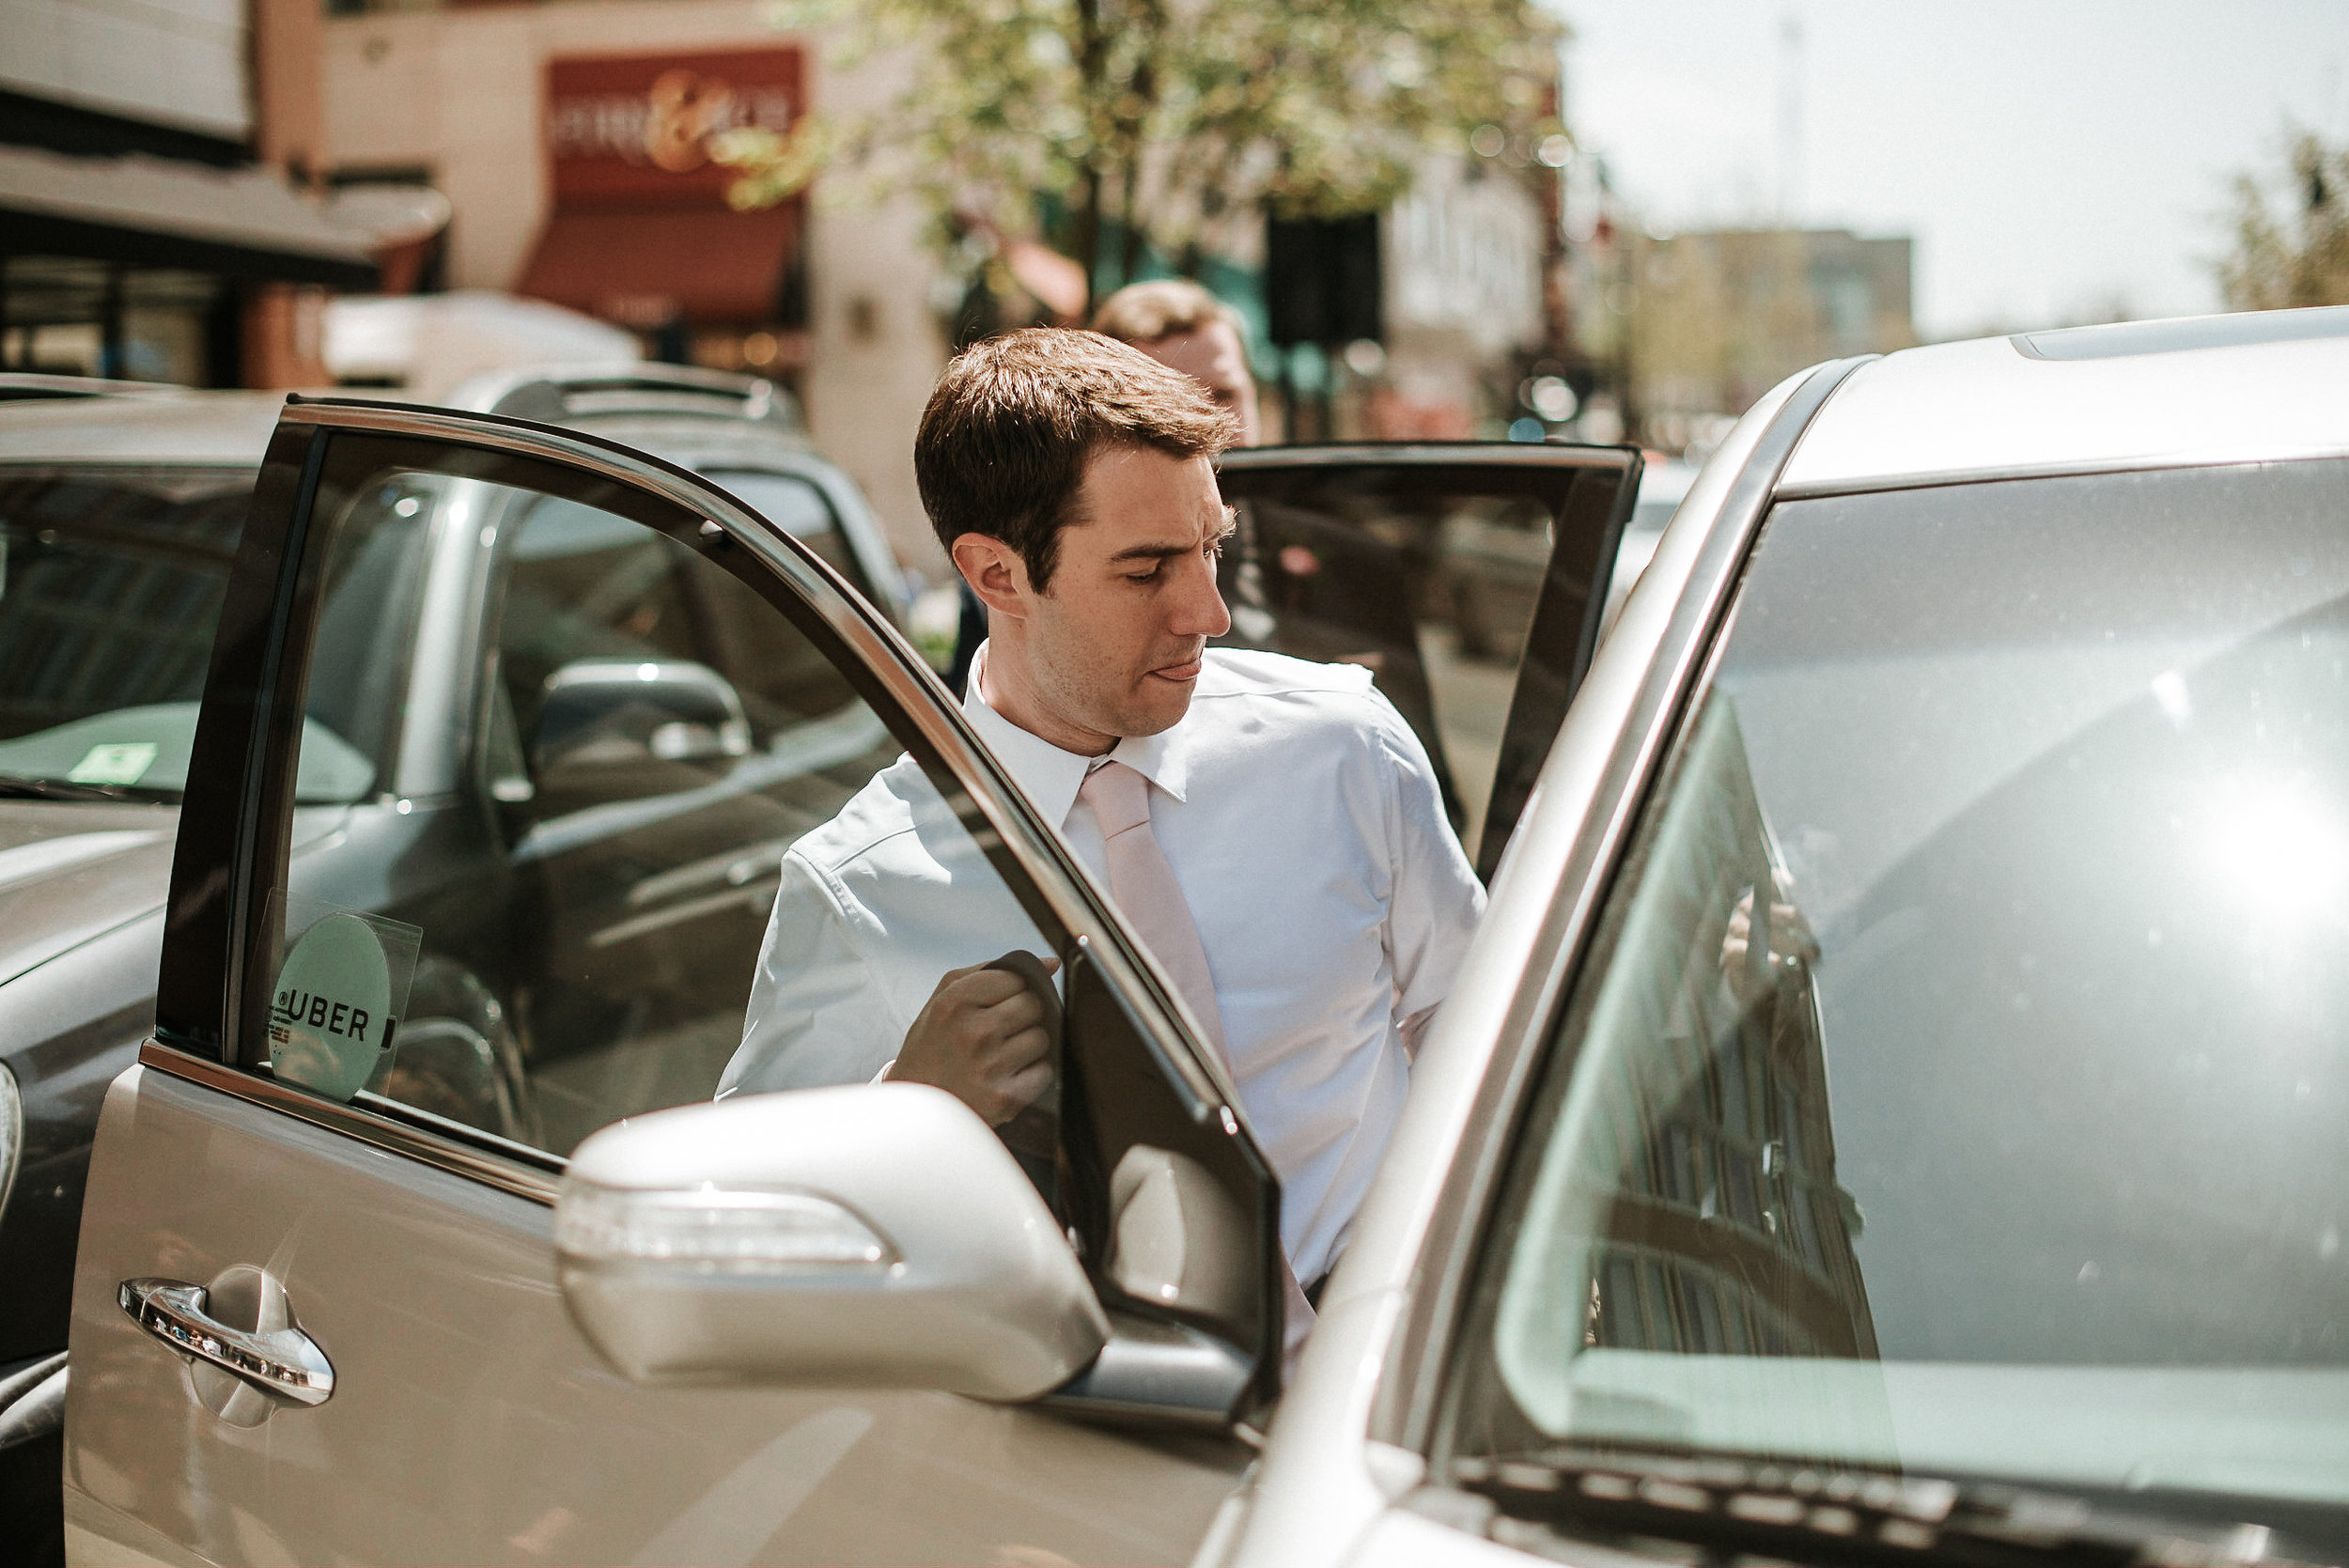 Groom climbing into car